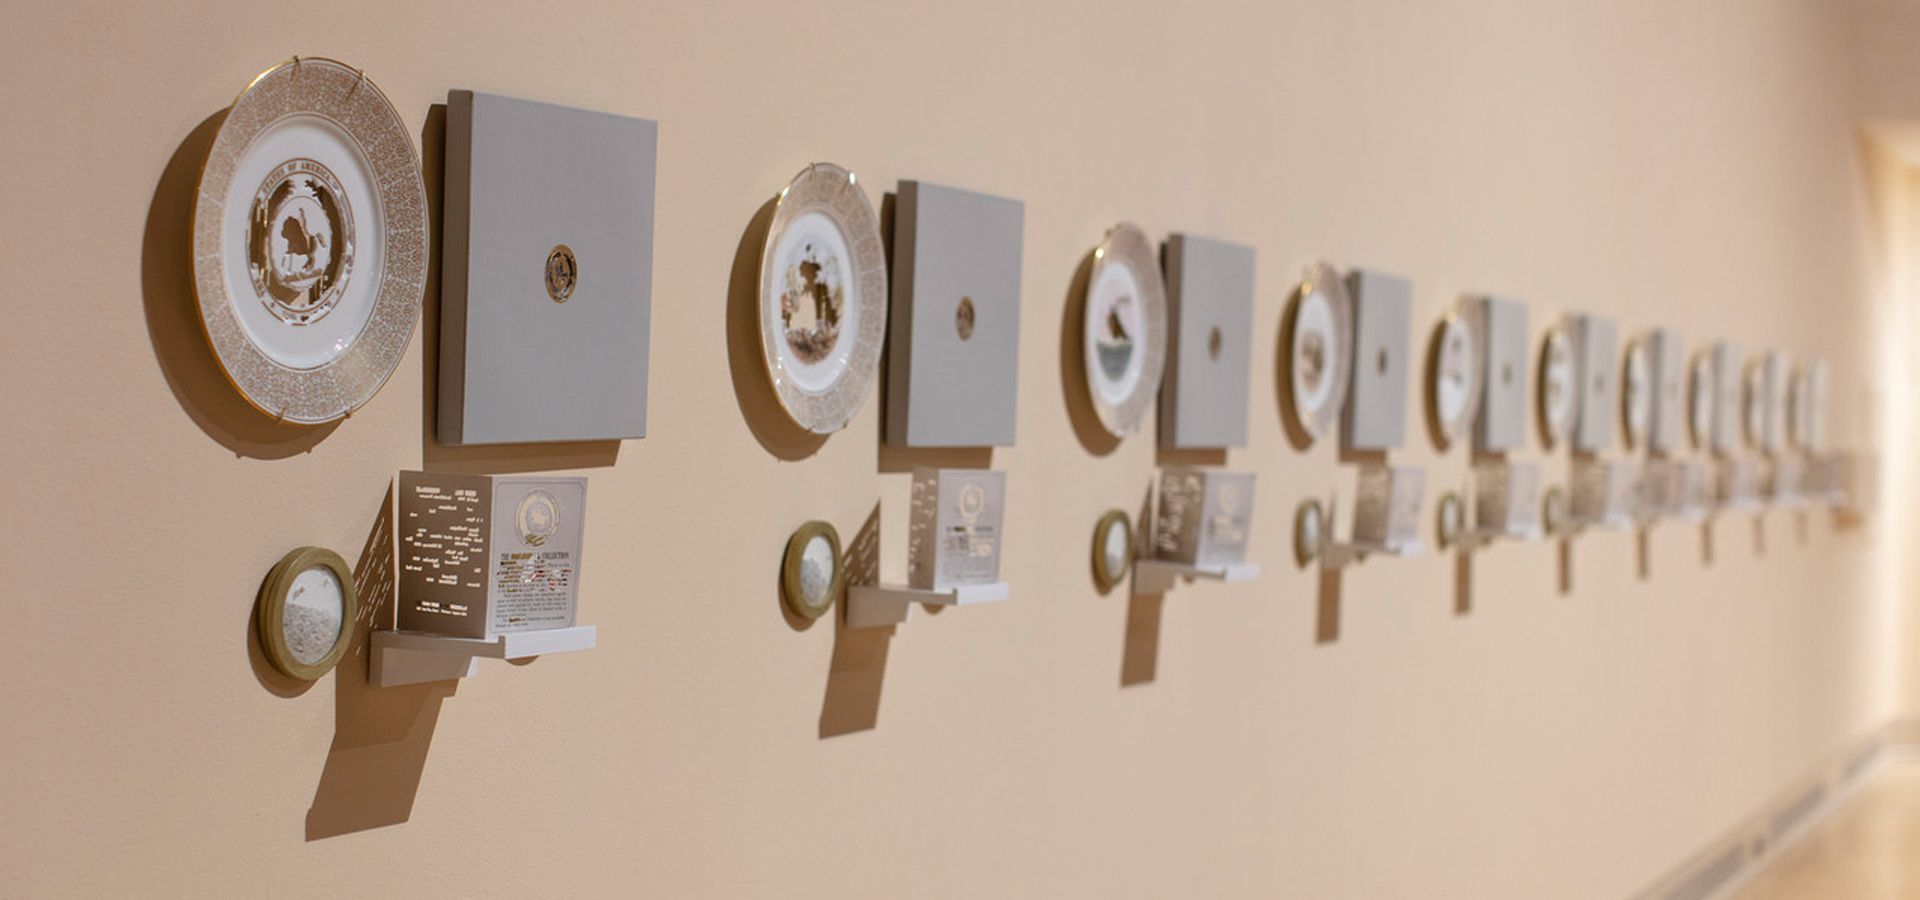 A row of porcelain plates and plaques mounted on a wall.